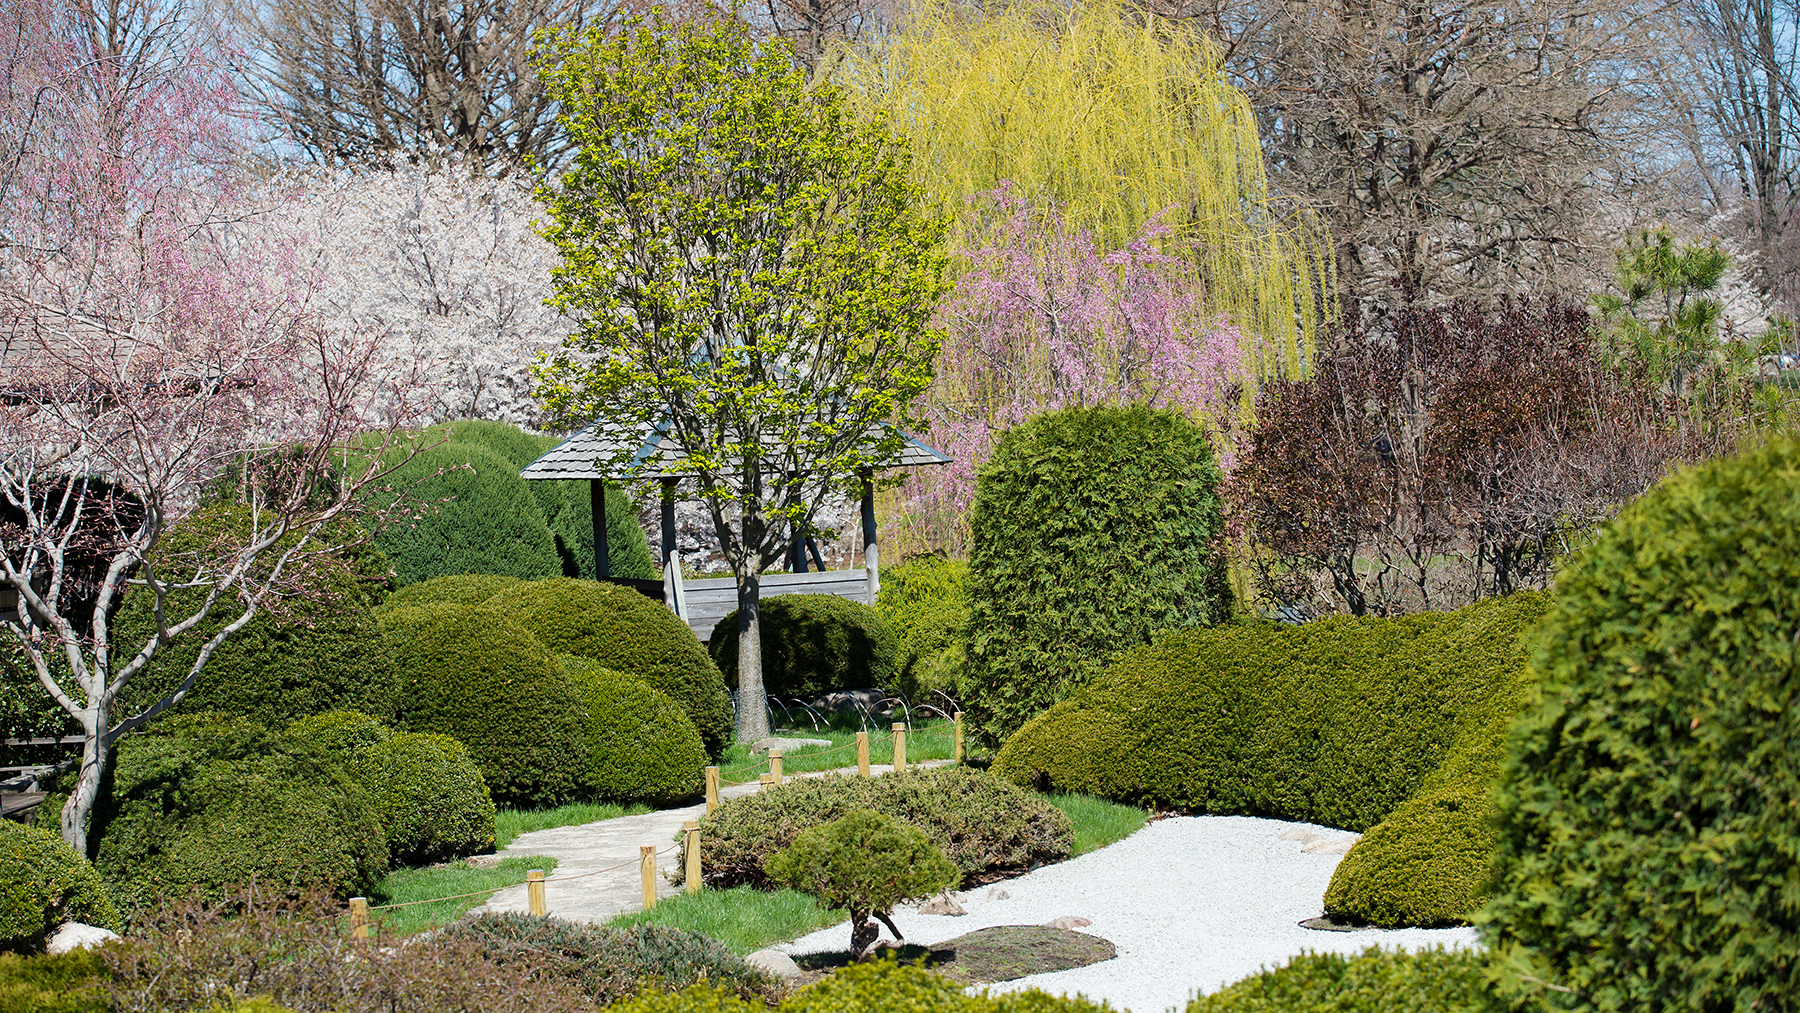 The Dry Garden surrounded by spring foliage.  Photo by Joyce Seay-Knoblauch